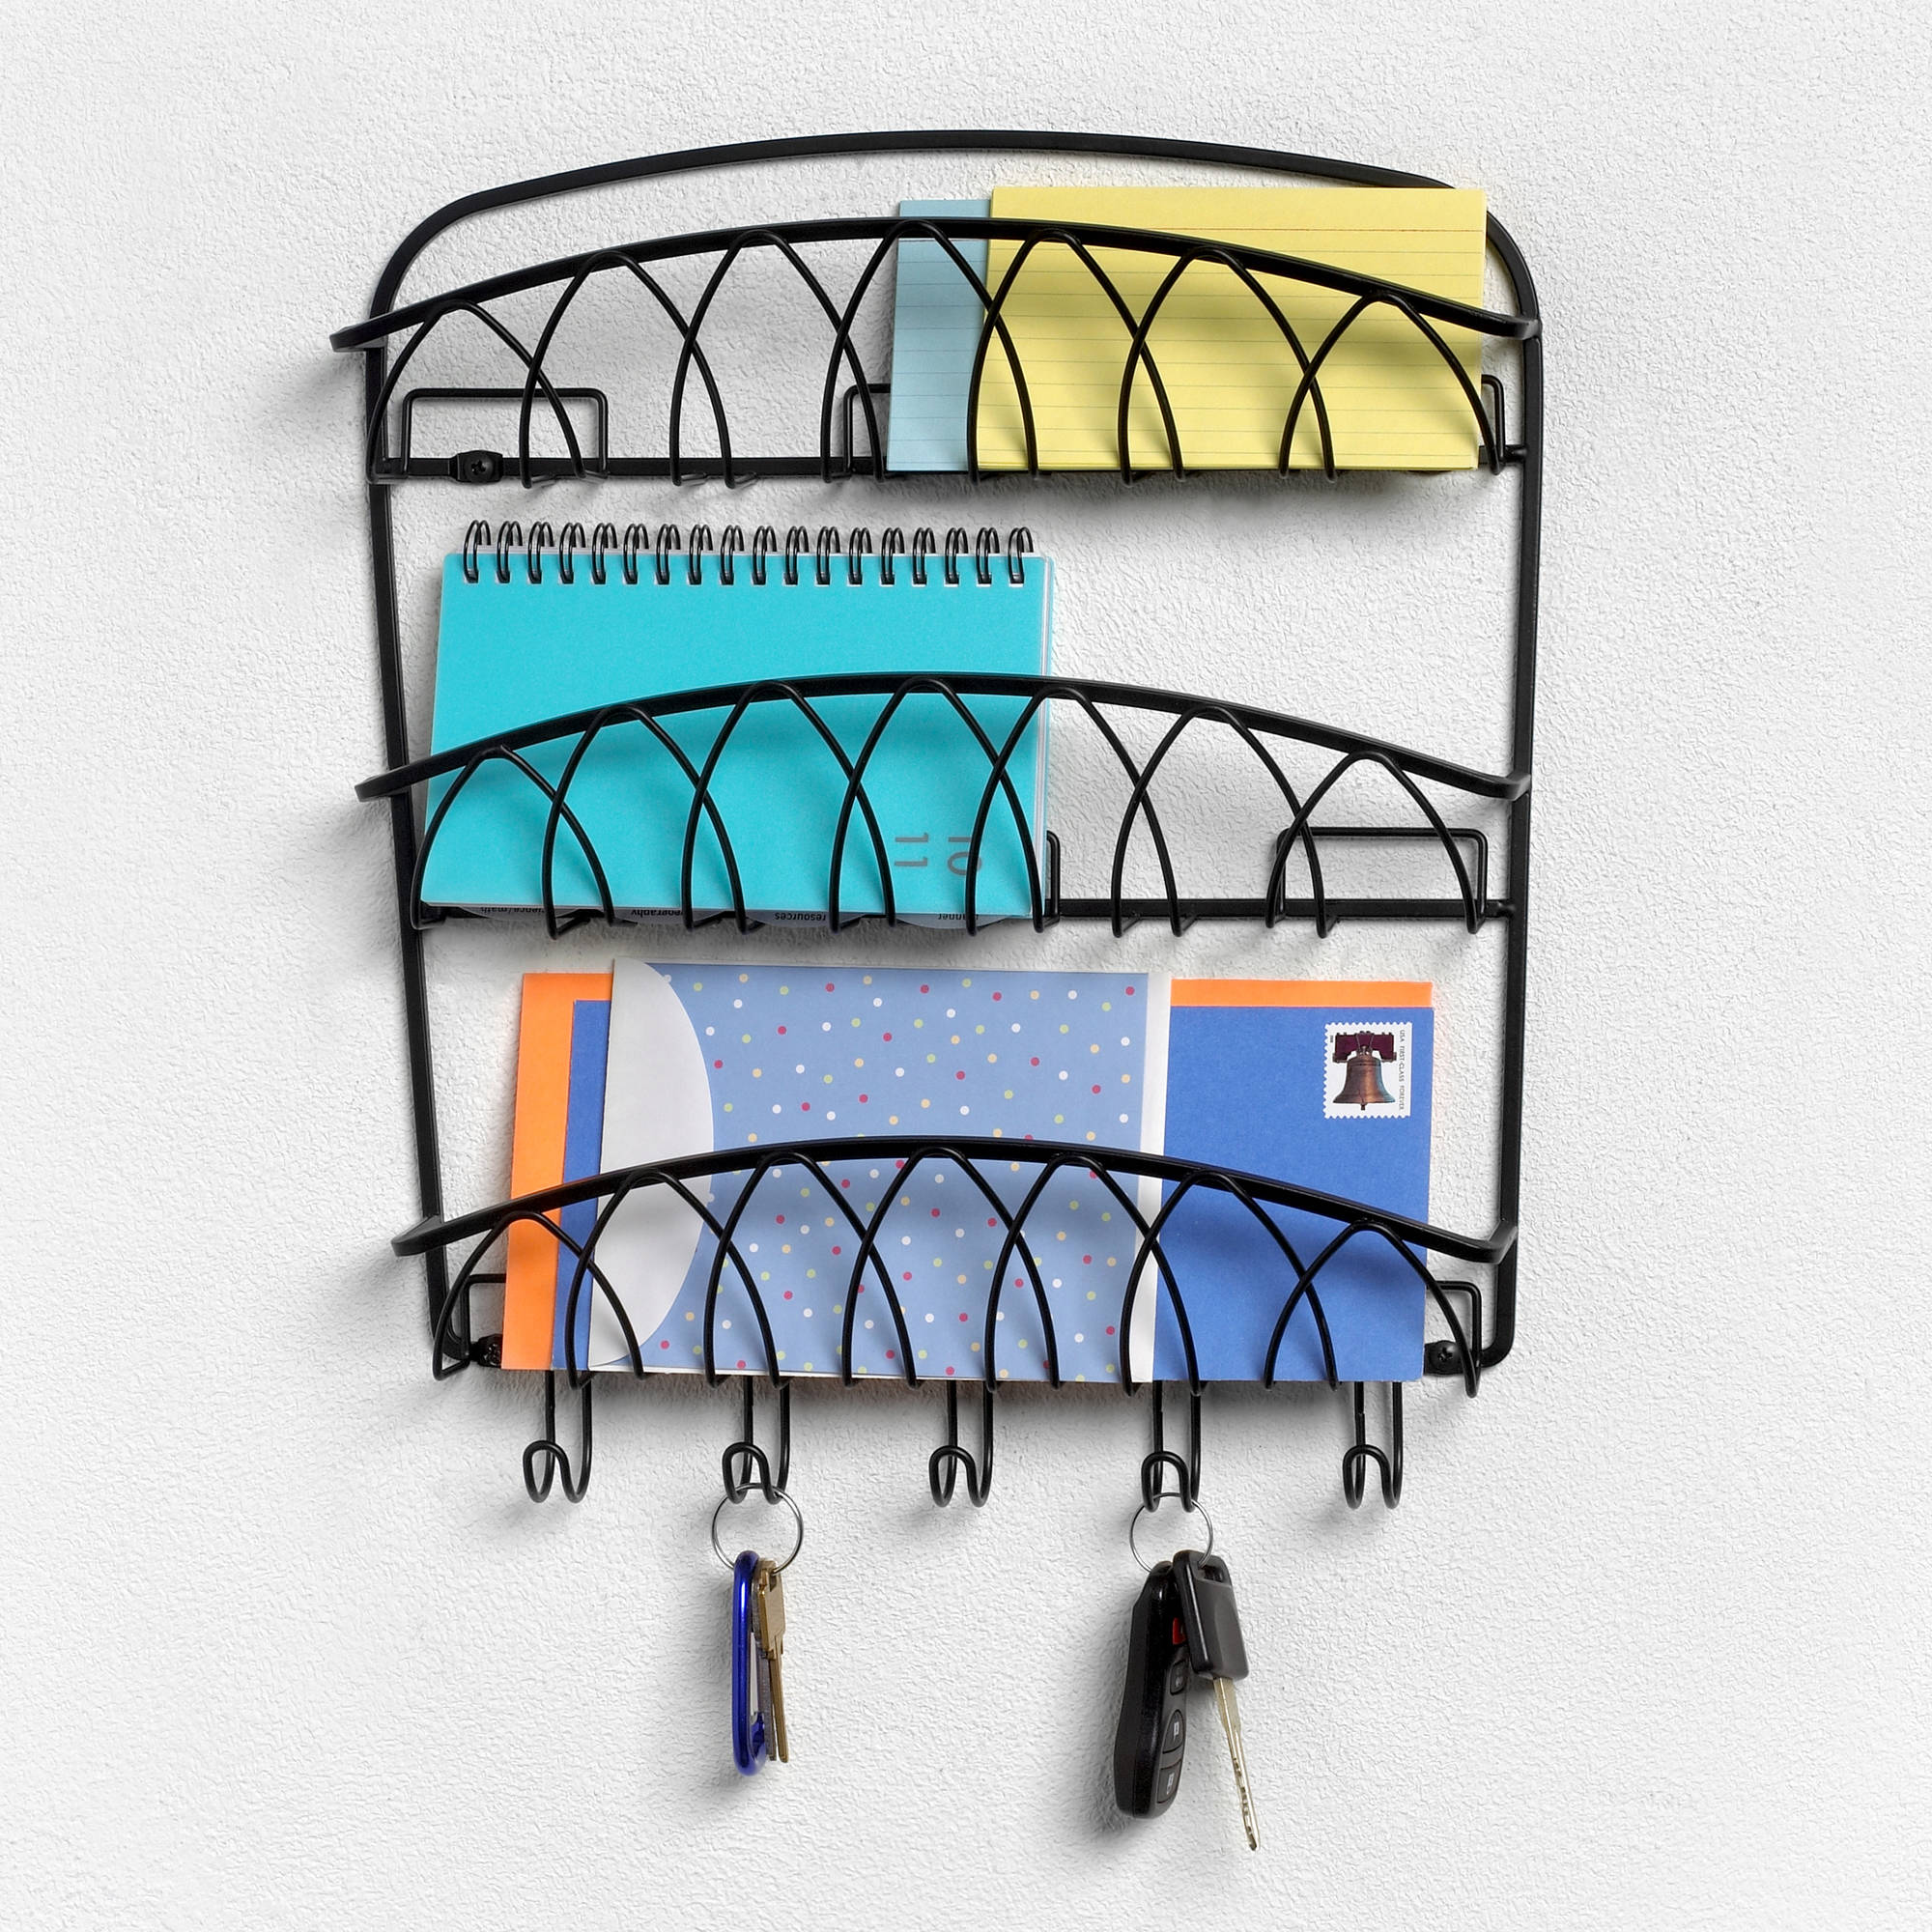 Spectrum 3-Tier Wall Mount Letter Holder, Black Twist